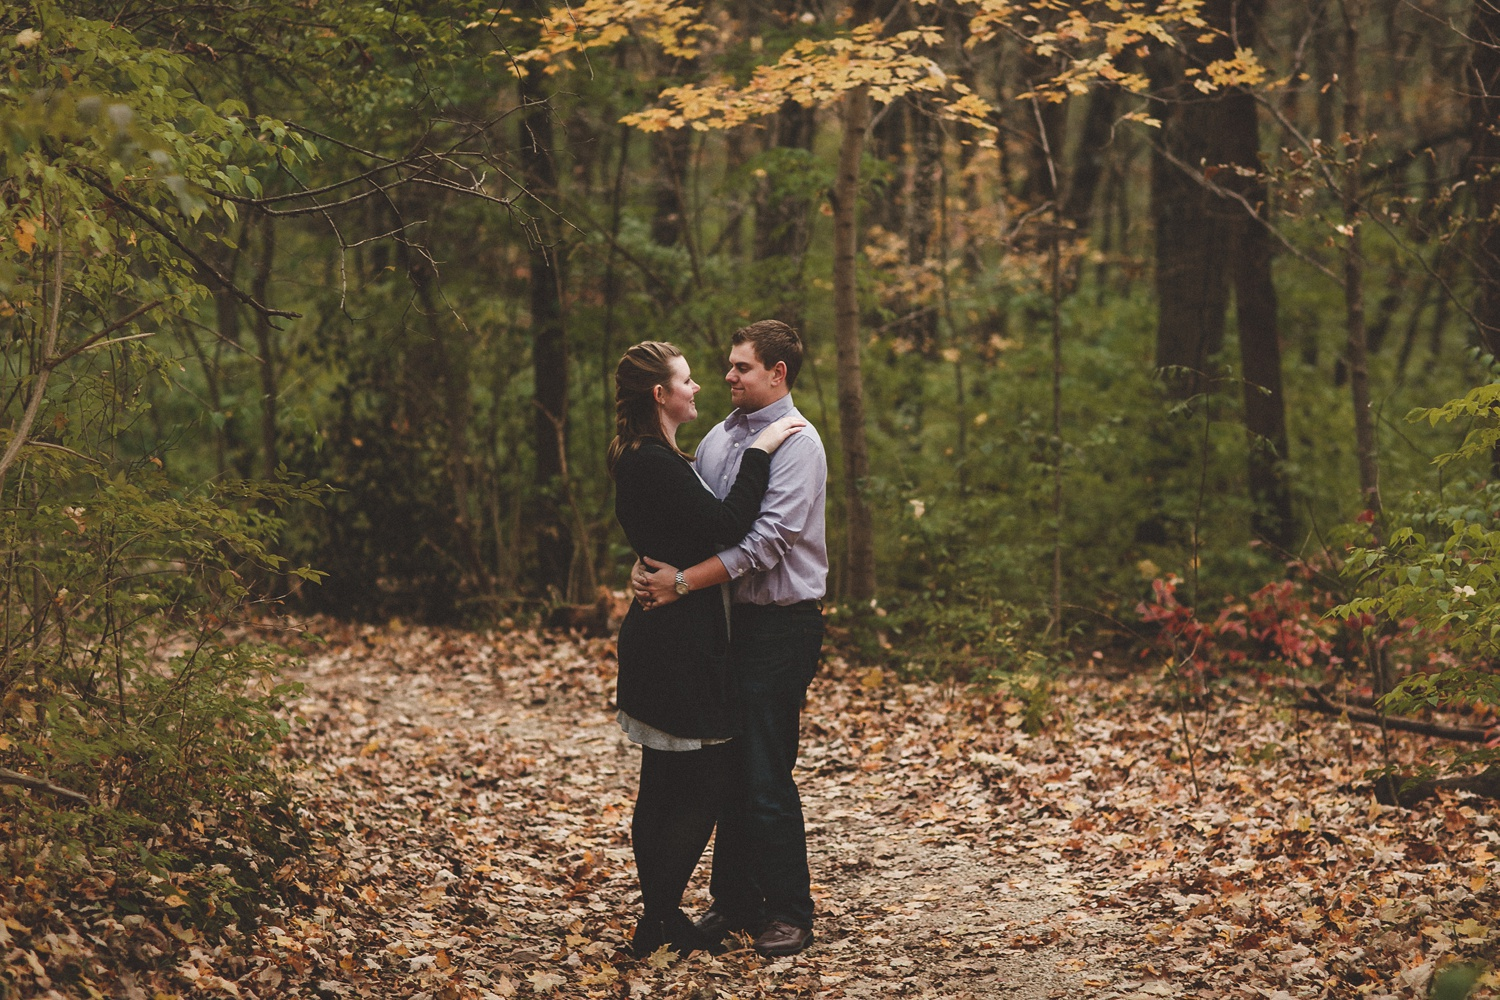 rock_cut_state_park_rockford_IL_engagement_photographer_0018.jpg